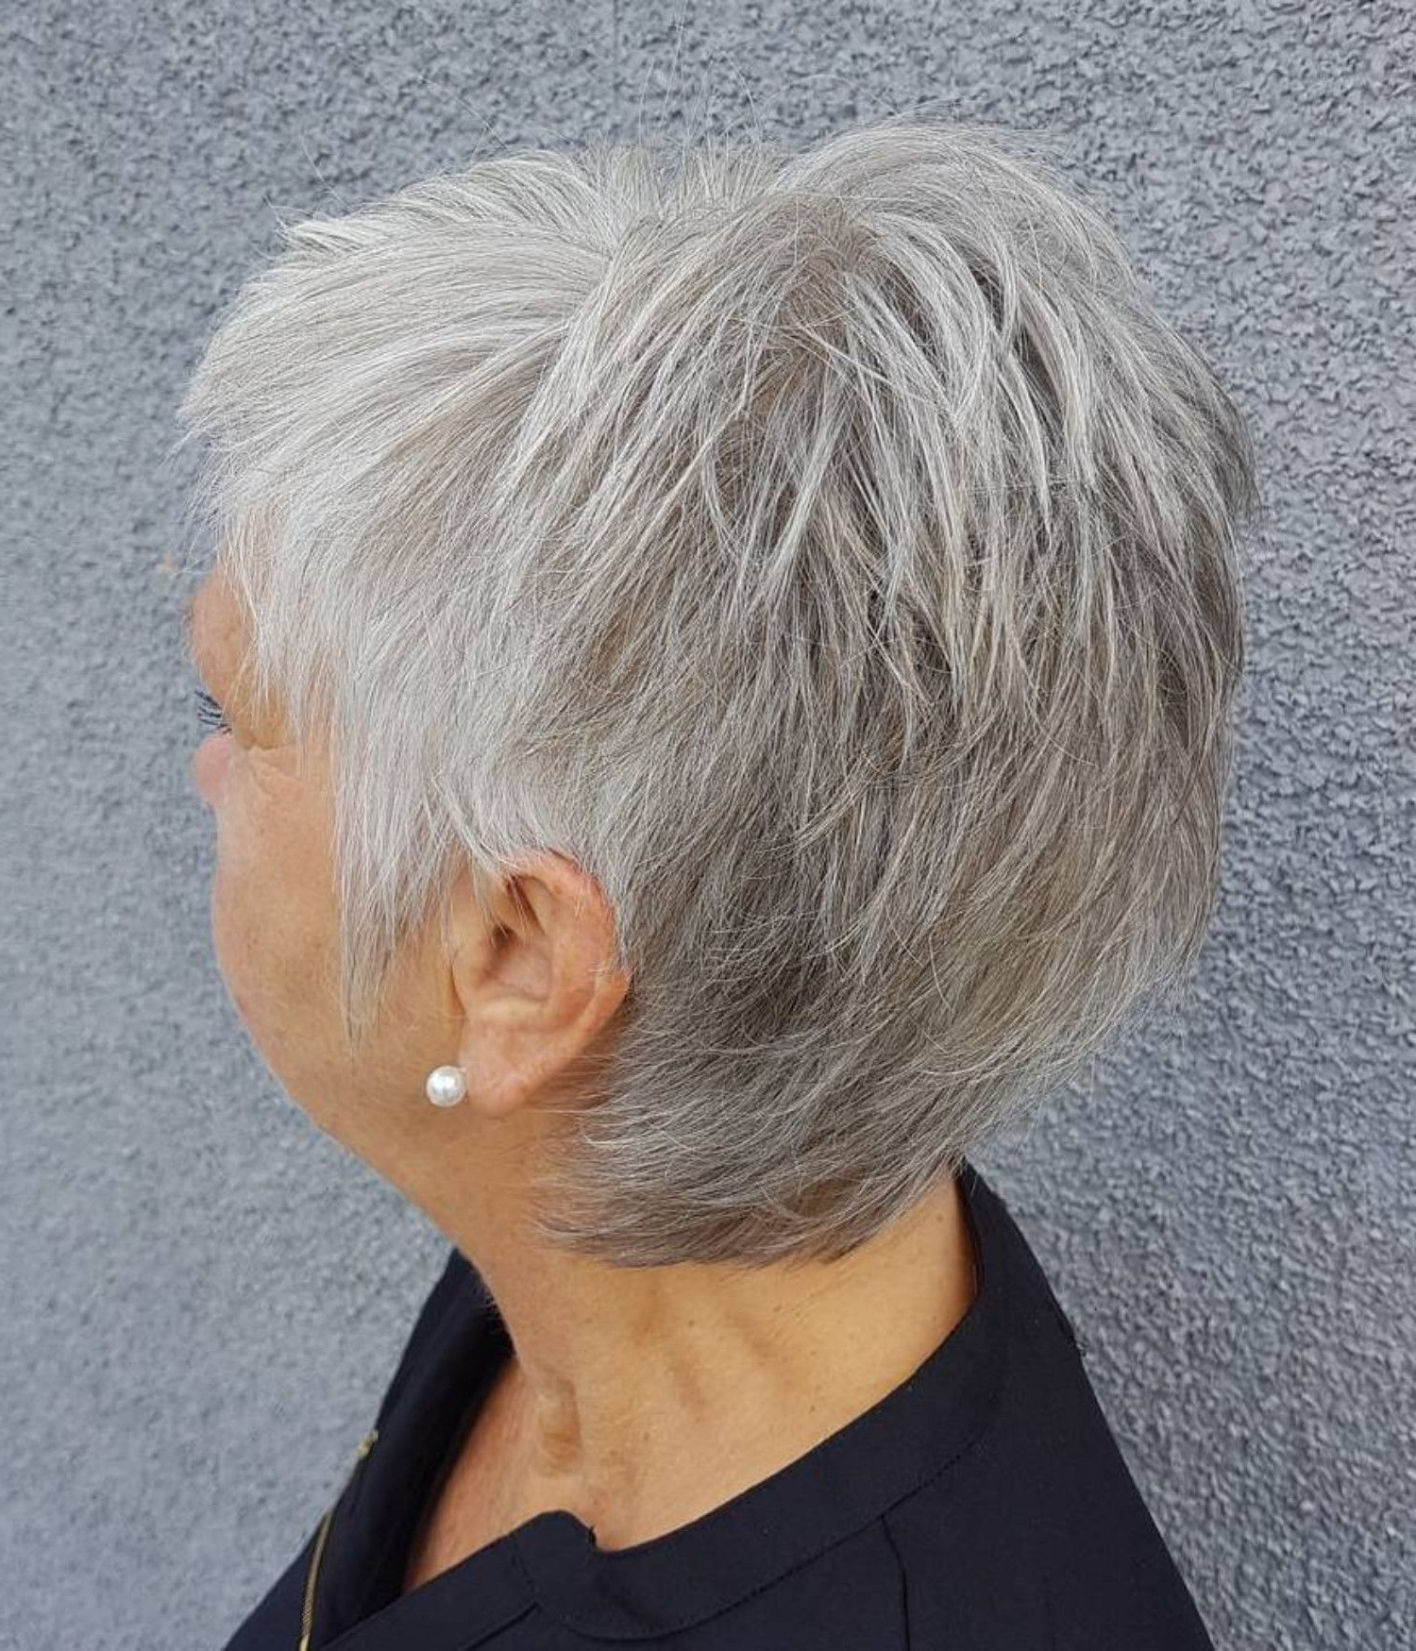 90 Classy And Simple Short Hairstyles For Women Over 50 In 2018 Inside Messy Salt And Pepper Pixie Hairstyles (View 11 of 20)